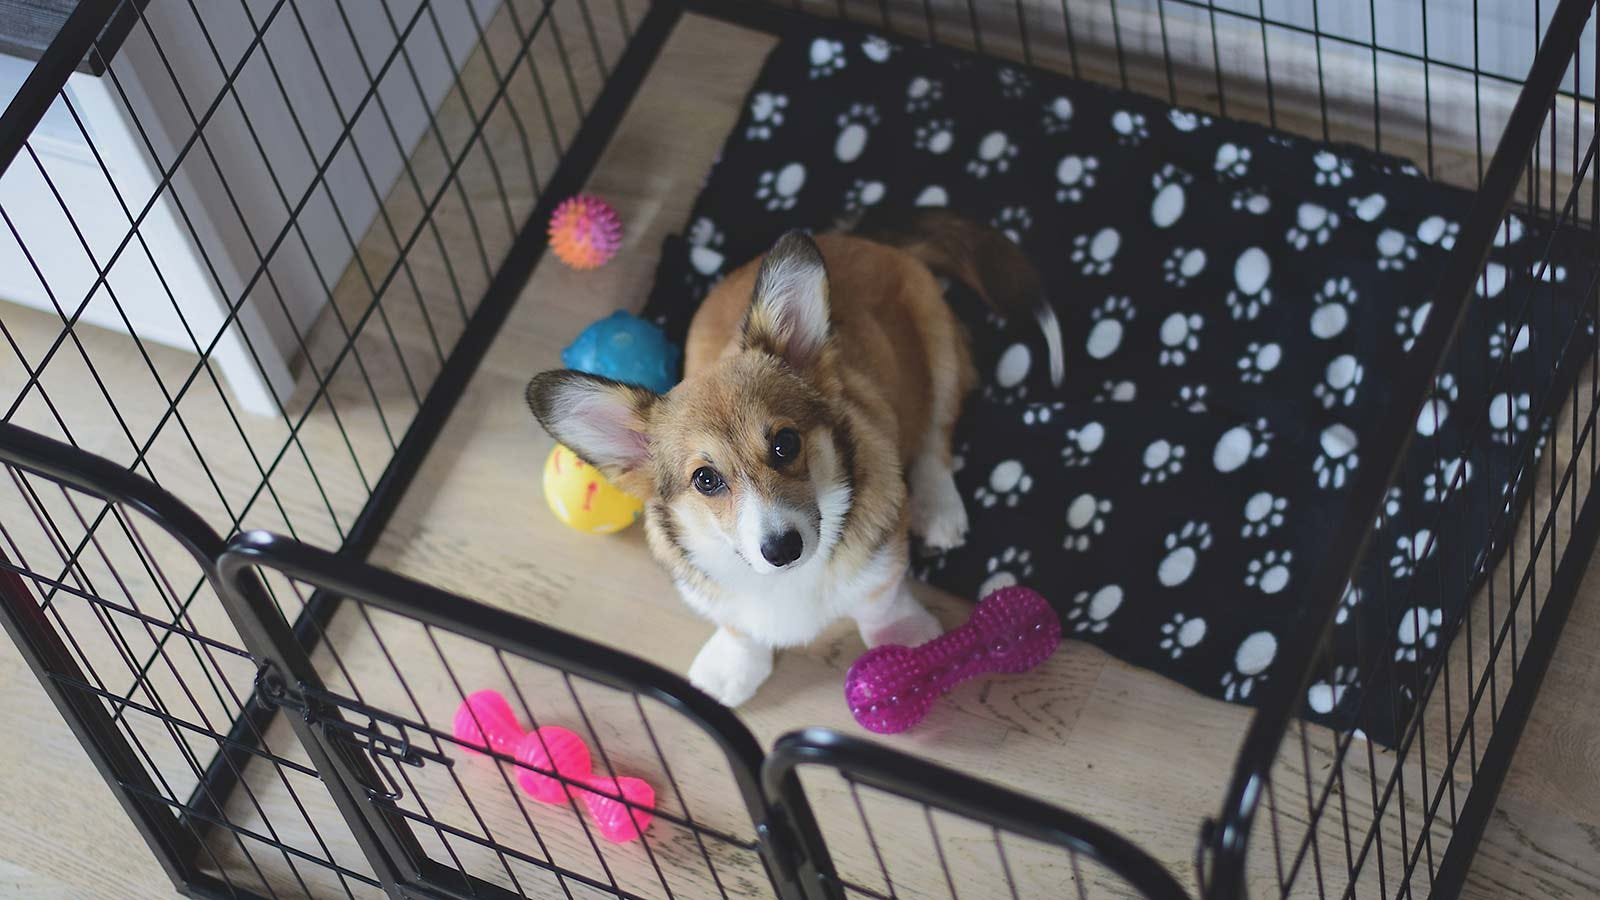 A Welsh corgi puppy in a pen surrounded by toys.